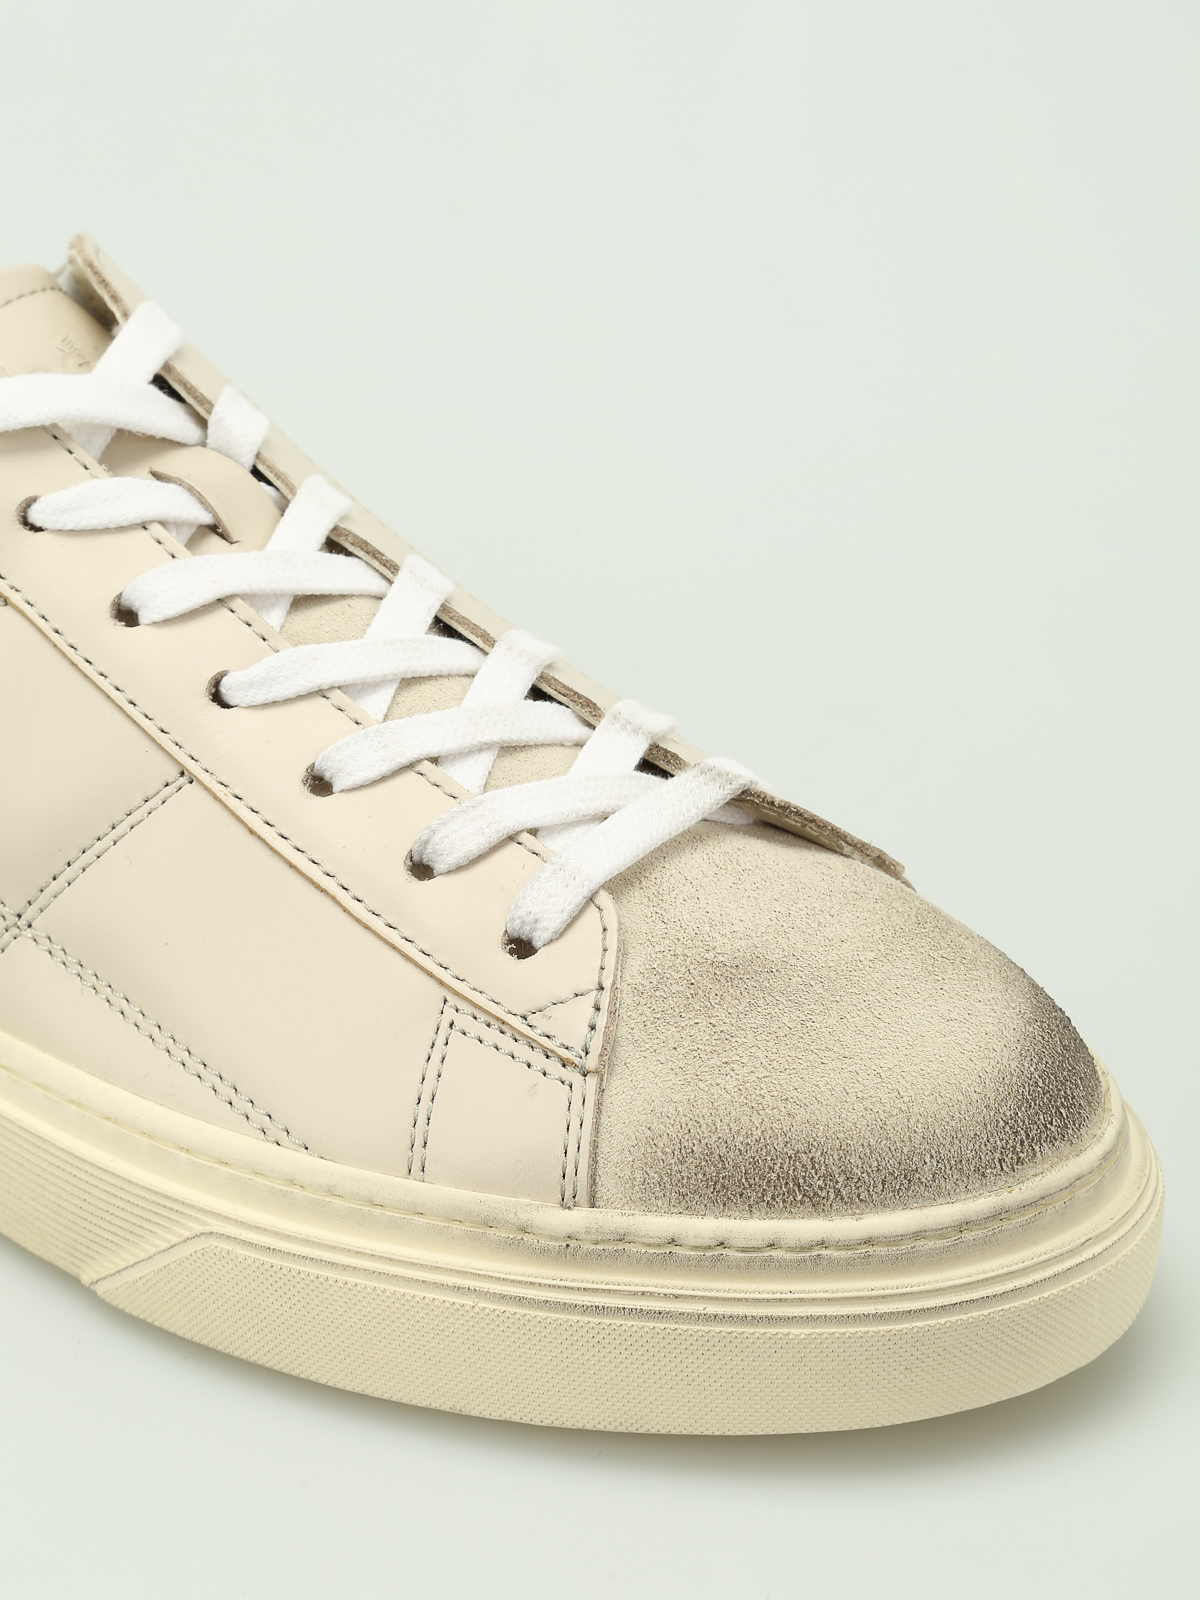 Hogan - H340 vintage leather sneakers - trainers - HXM3400J550HWPB019